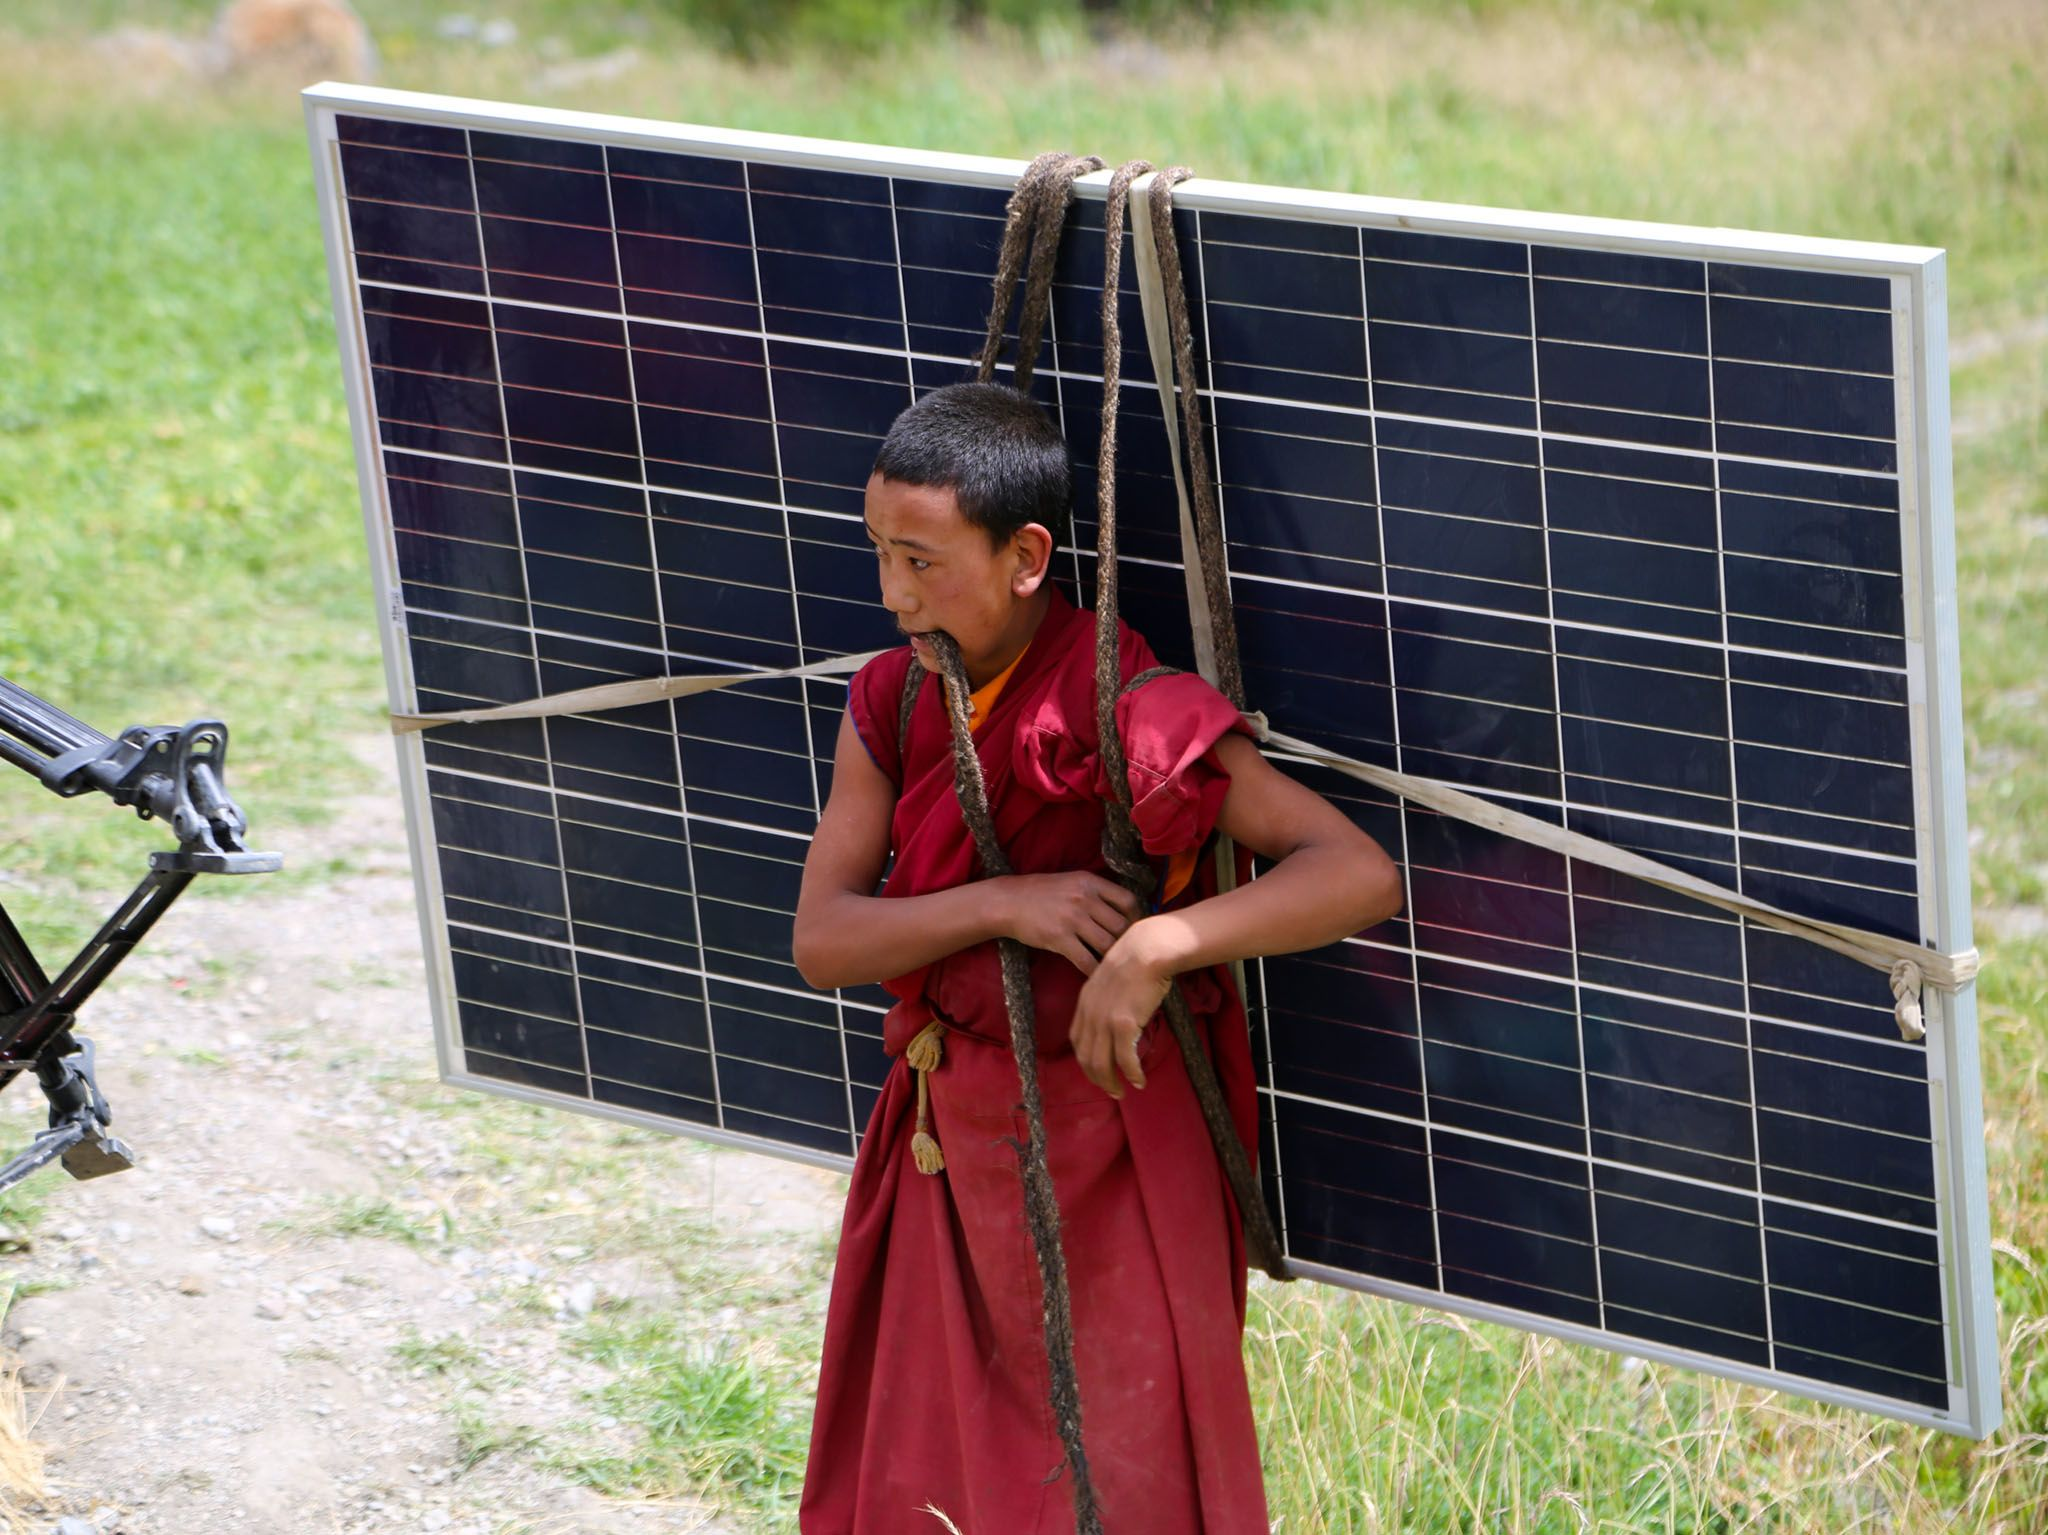 Lingshed, India: Local villager transporting solar panels through the mountainside. This image... [Photo of the day - 四月 2017]